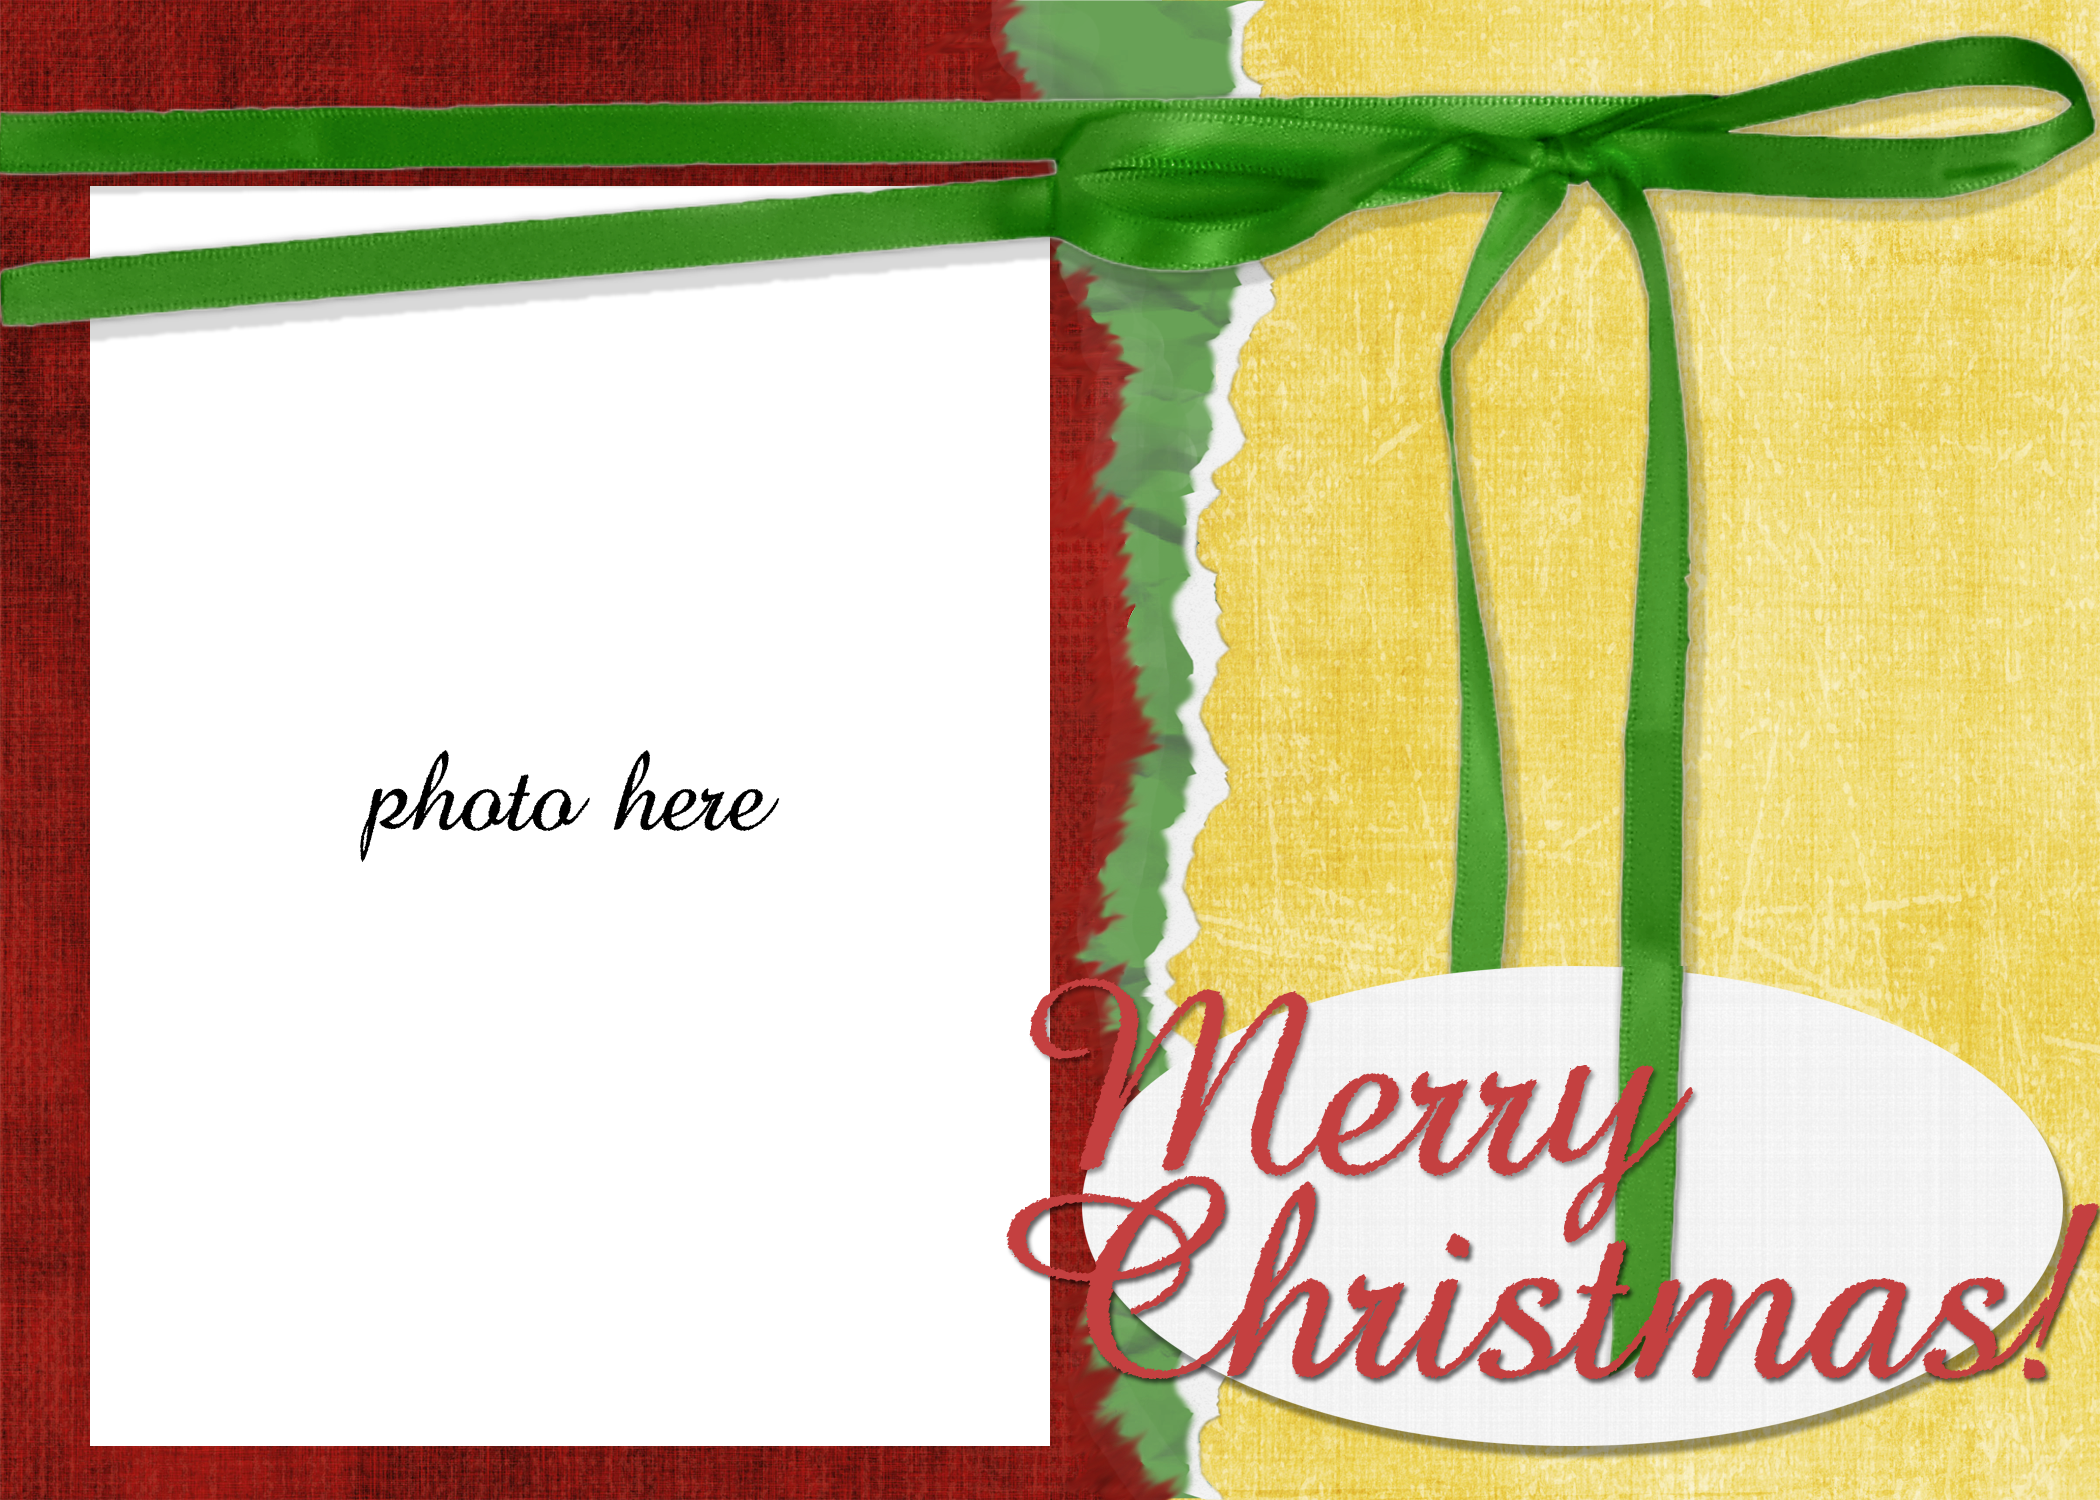 Free Christmas Cards Templates Create Xmas Cards For Sending To Your  Friends 3Ui6w11P  Free Xmas Card Template